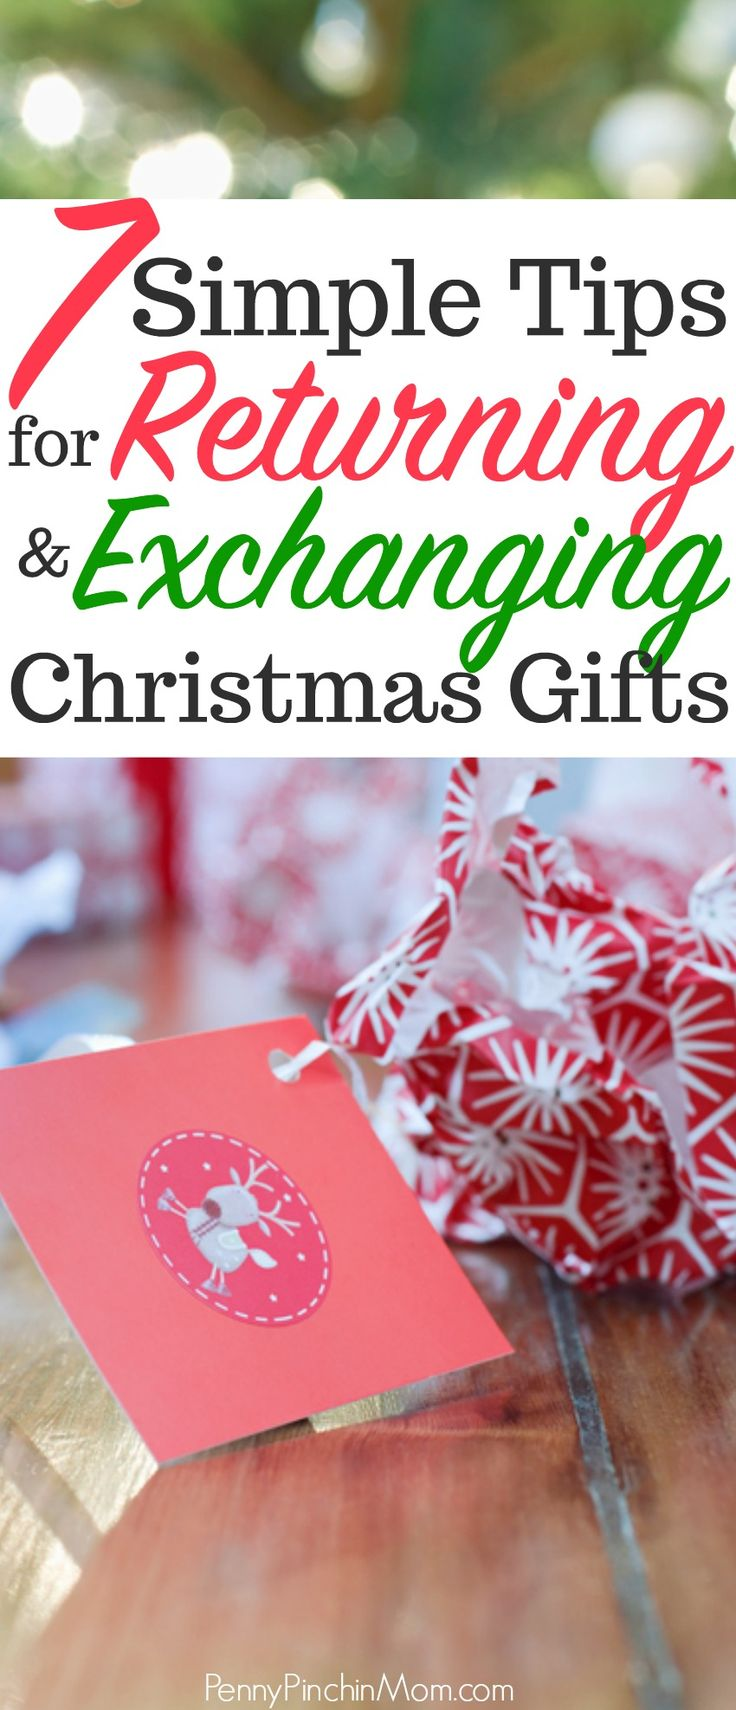 How to make returning or exchanging gifts easy this year  Christmas gifts | Gifts ideas | Gift Returns | Gift Exchange | stress free  #Gifts #Giftexchange